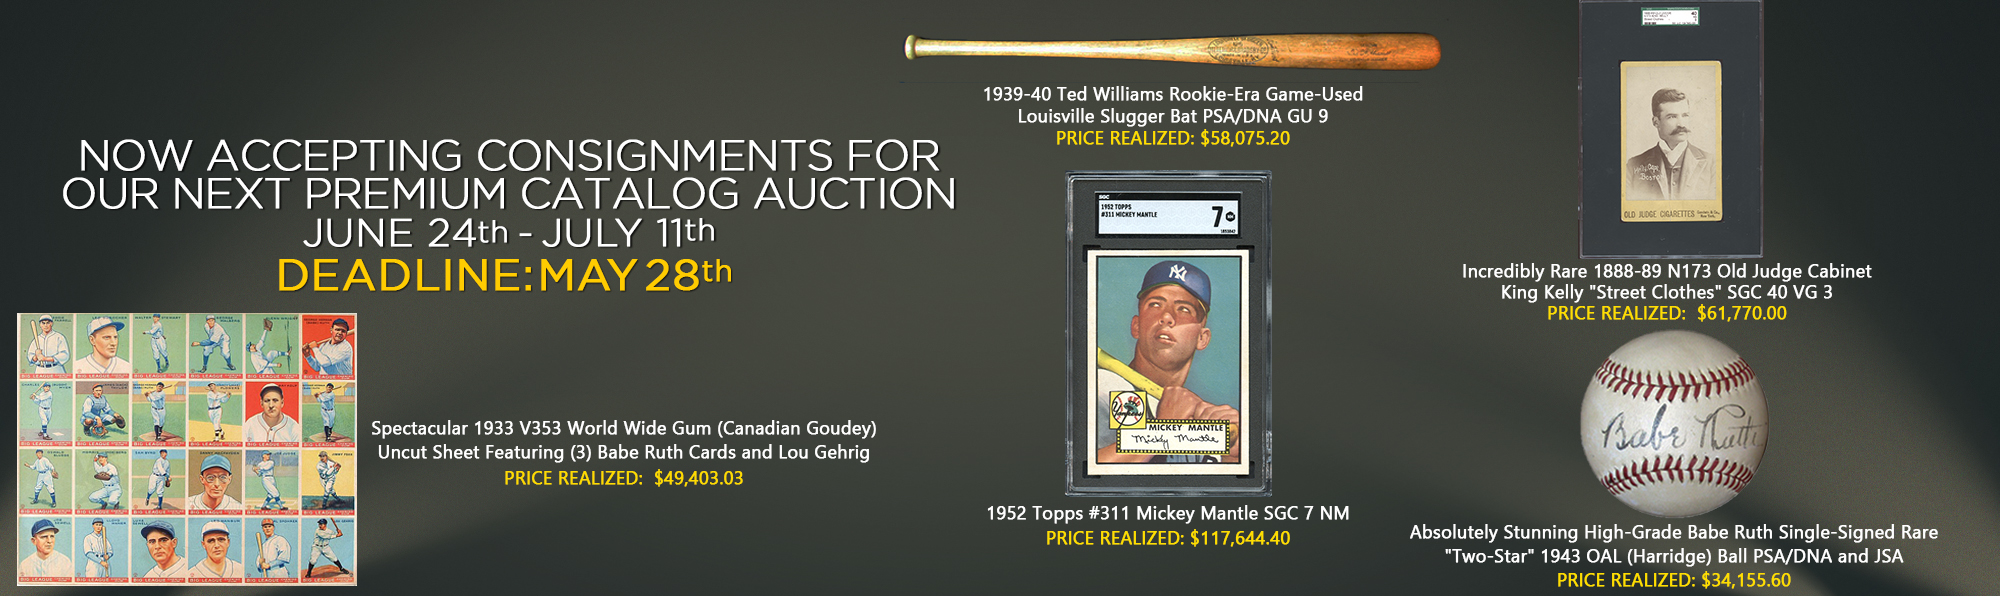 Now Accepting Consignments For Our June/July Premium Catalog Auction.